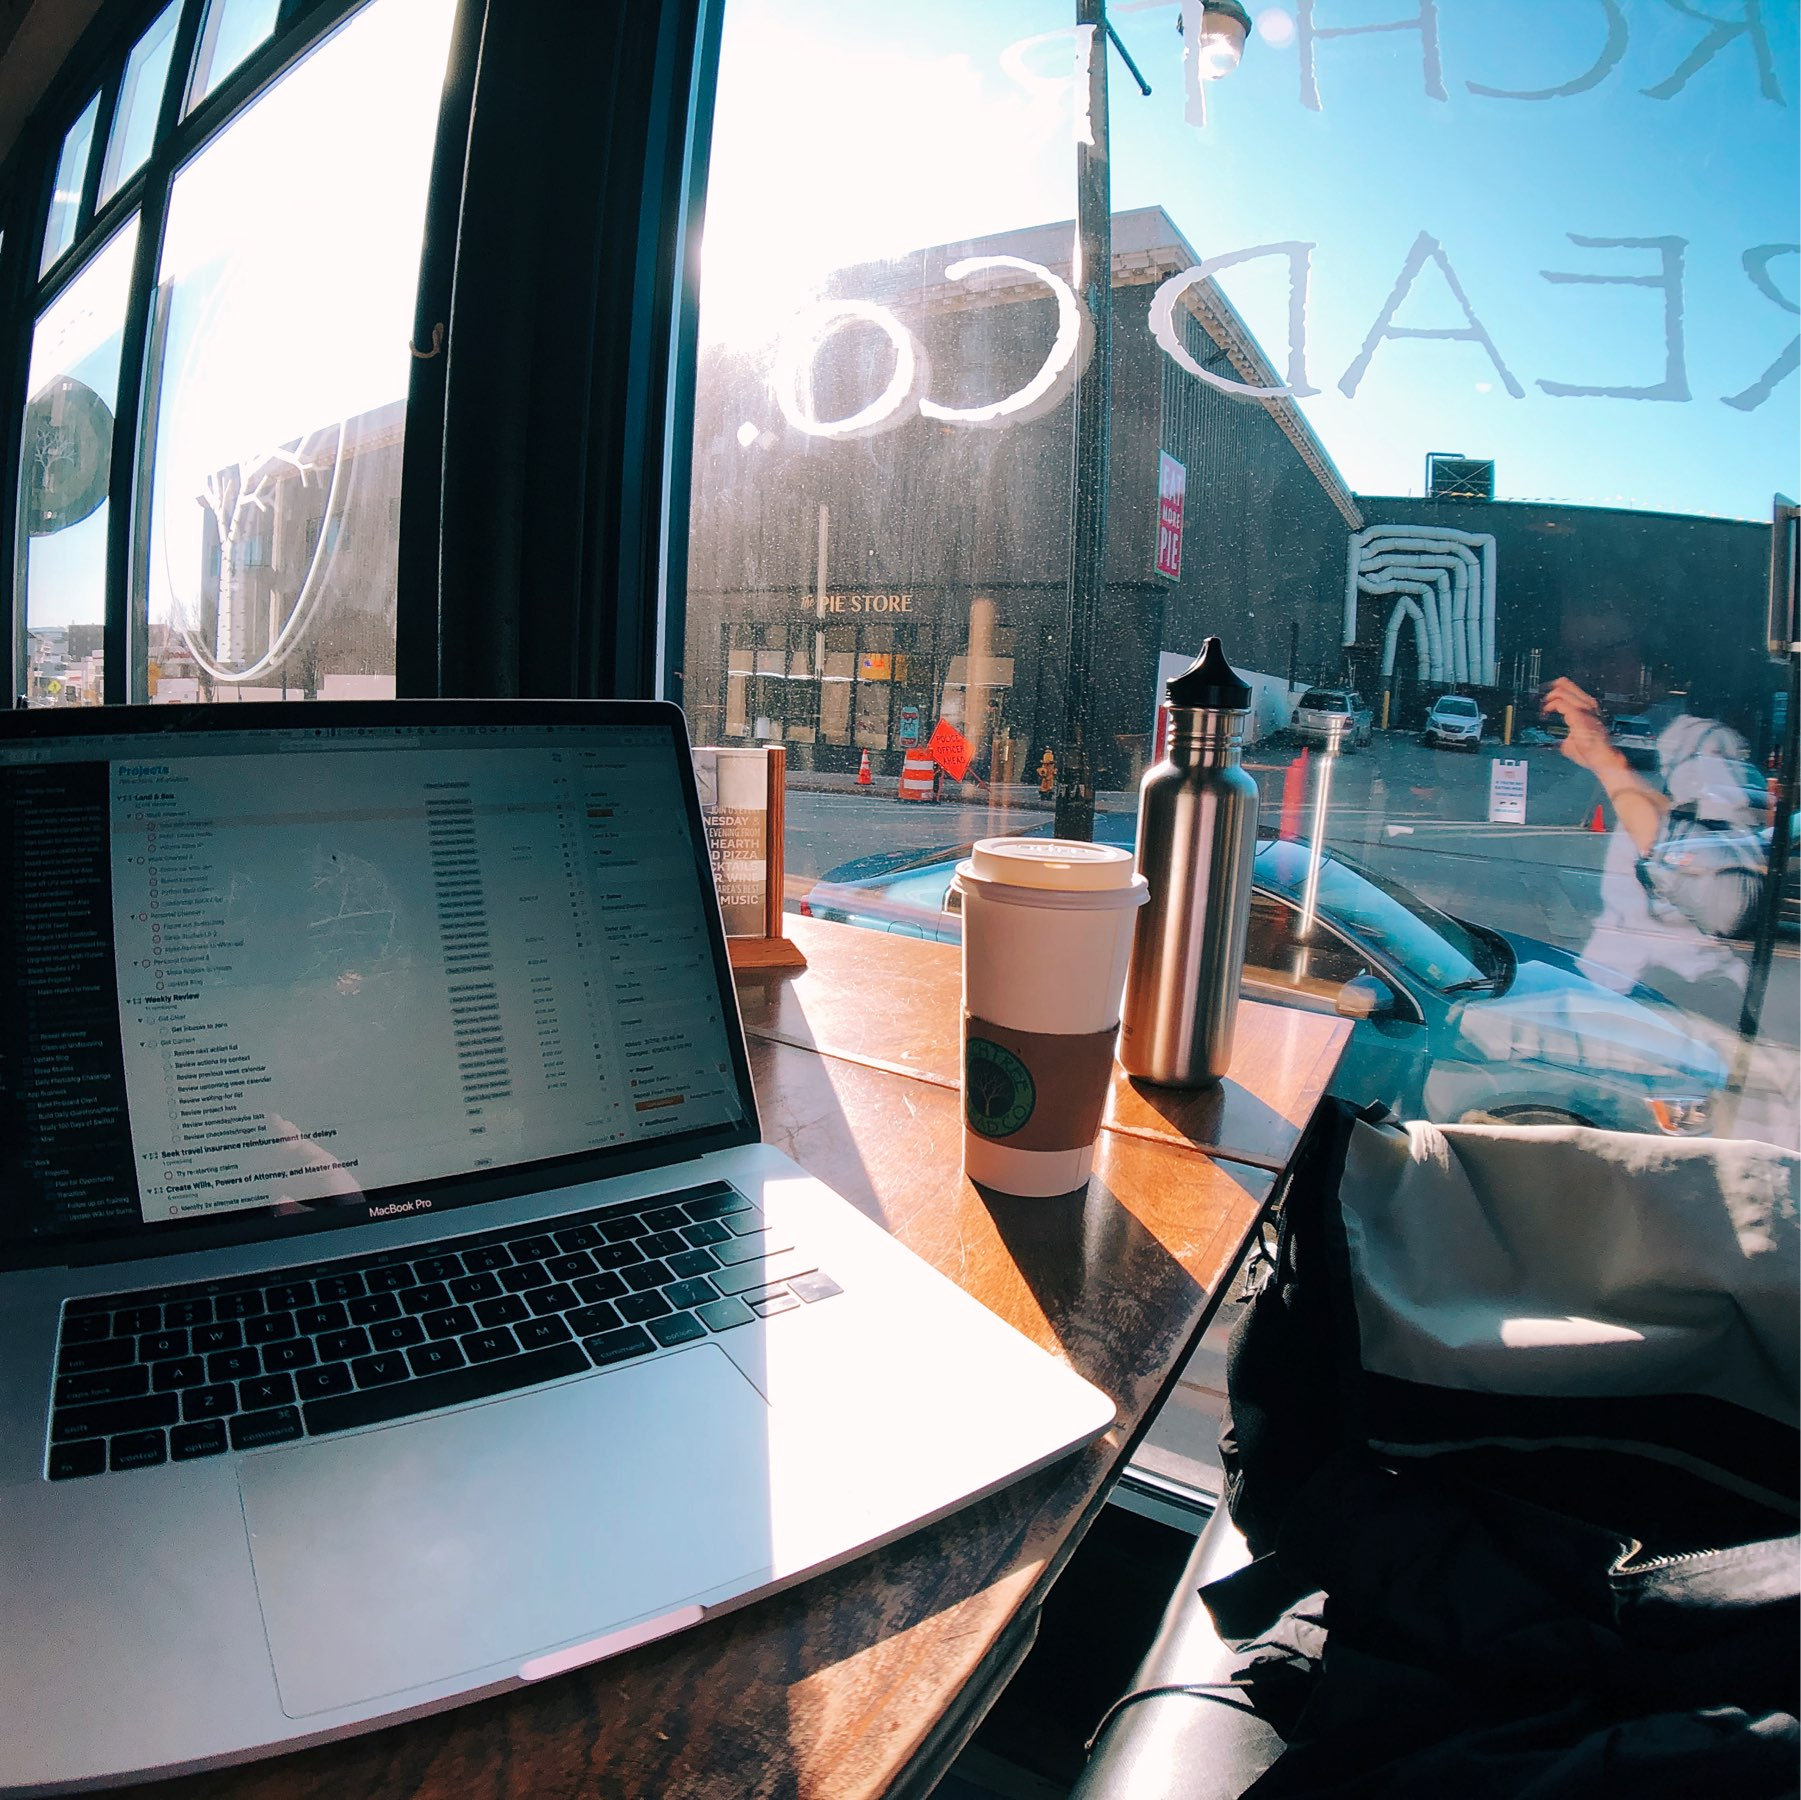 Laptop in sun at coffee shop.